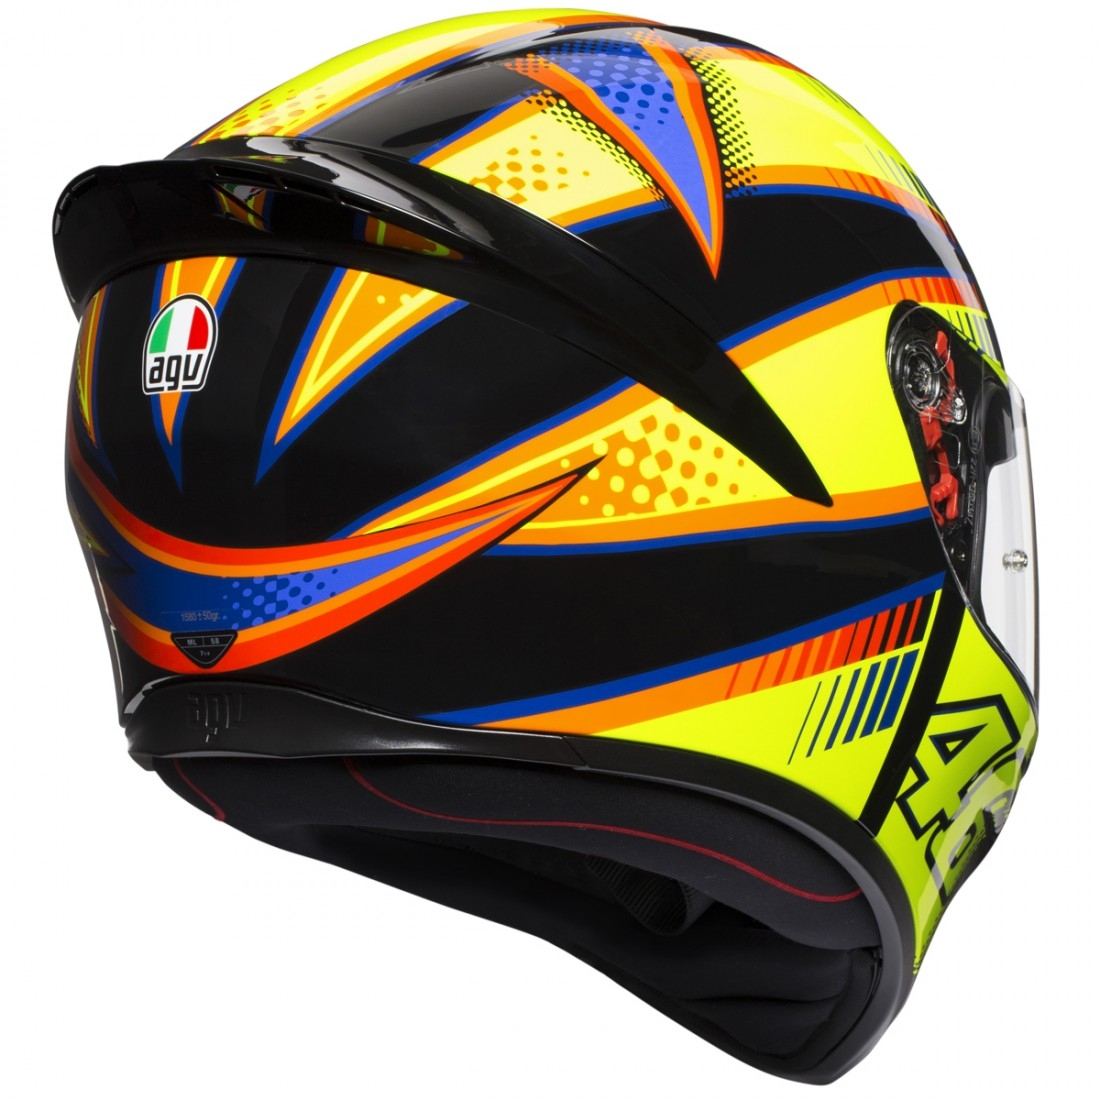 casque agv k 1 rossi soleluna 2015 motocard. Black Bedroom Furniture Sets. Home Design Ideas